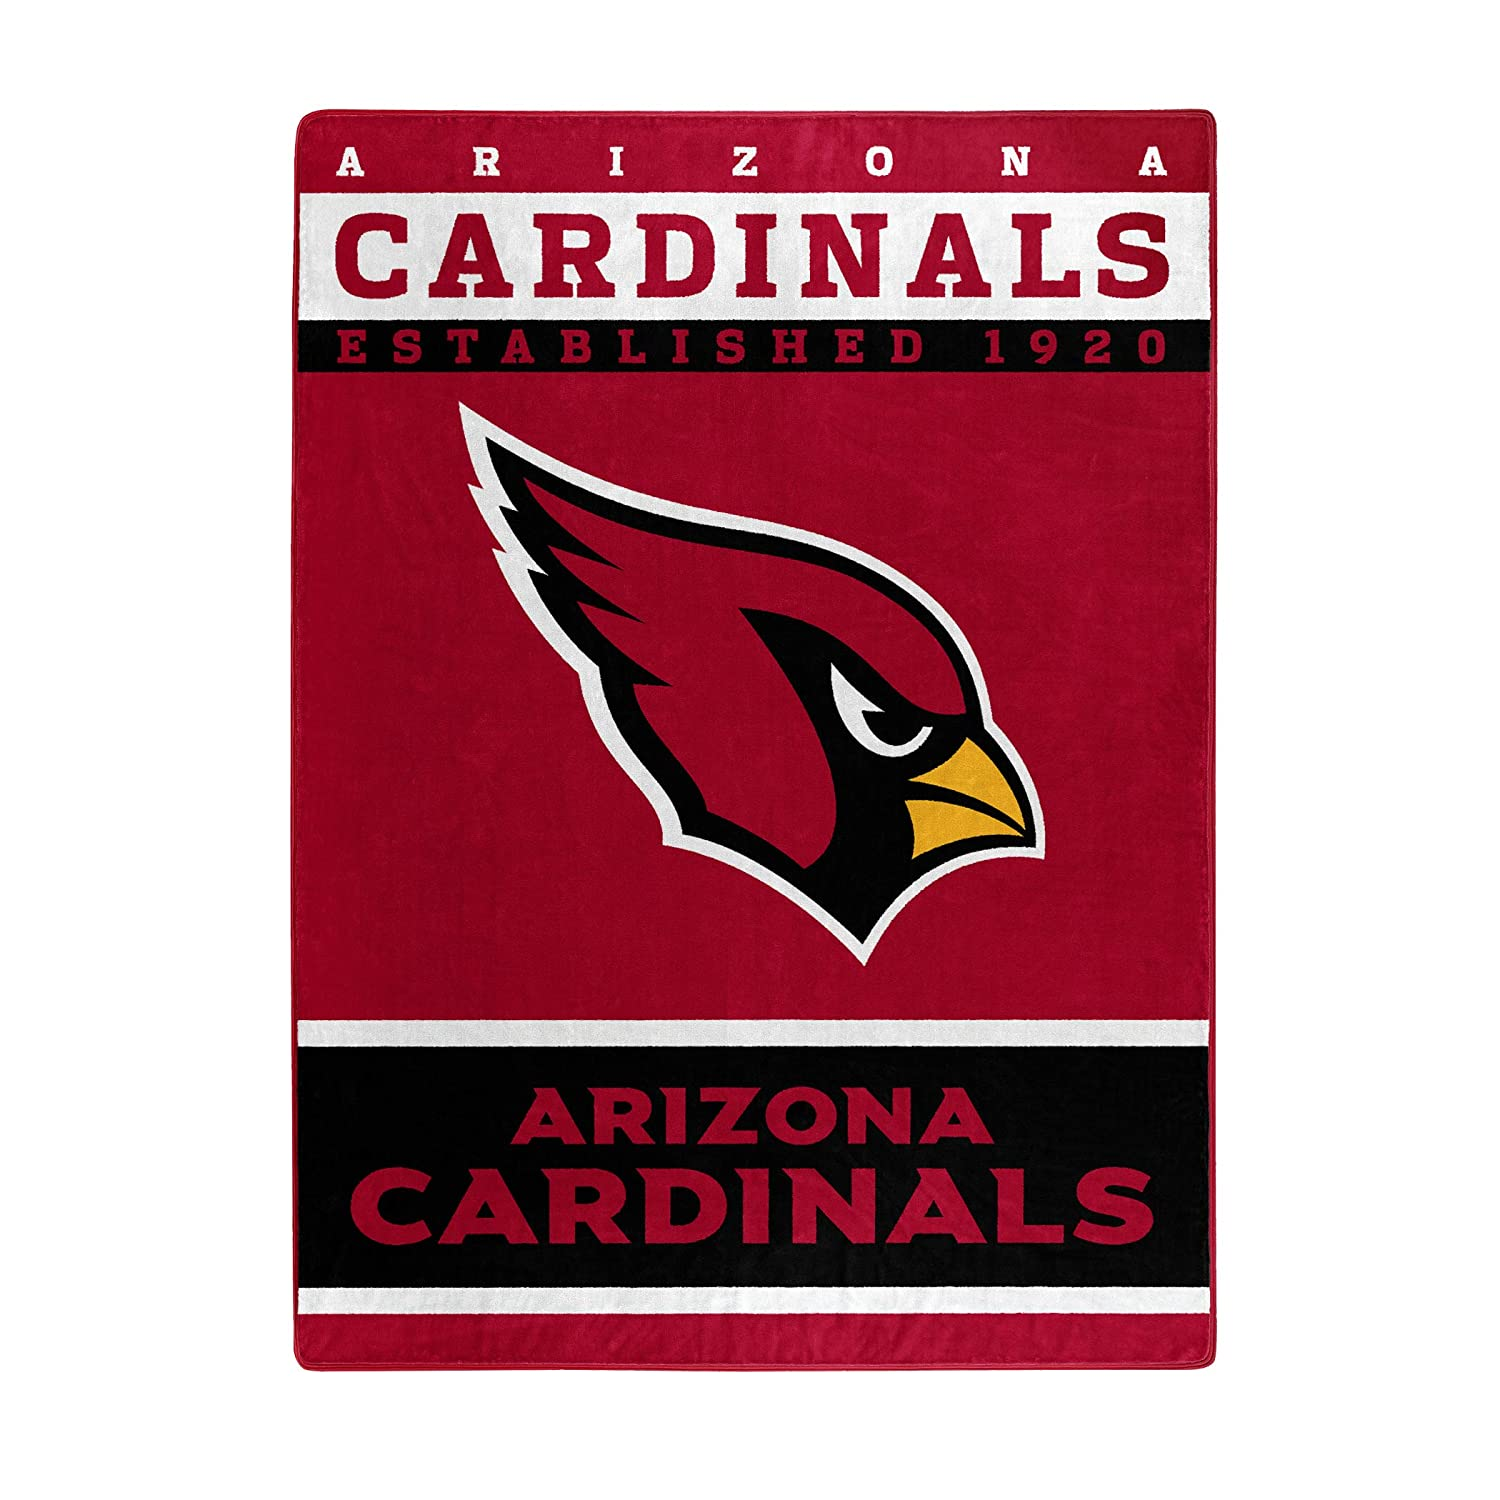 95e090ffd14 Amazon.com   The Northwest Company Officially Licensed NFL Arizona  Cardinals 12th Man Plush Raschel Throw Blanket